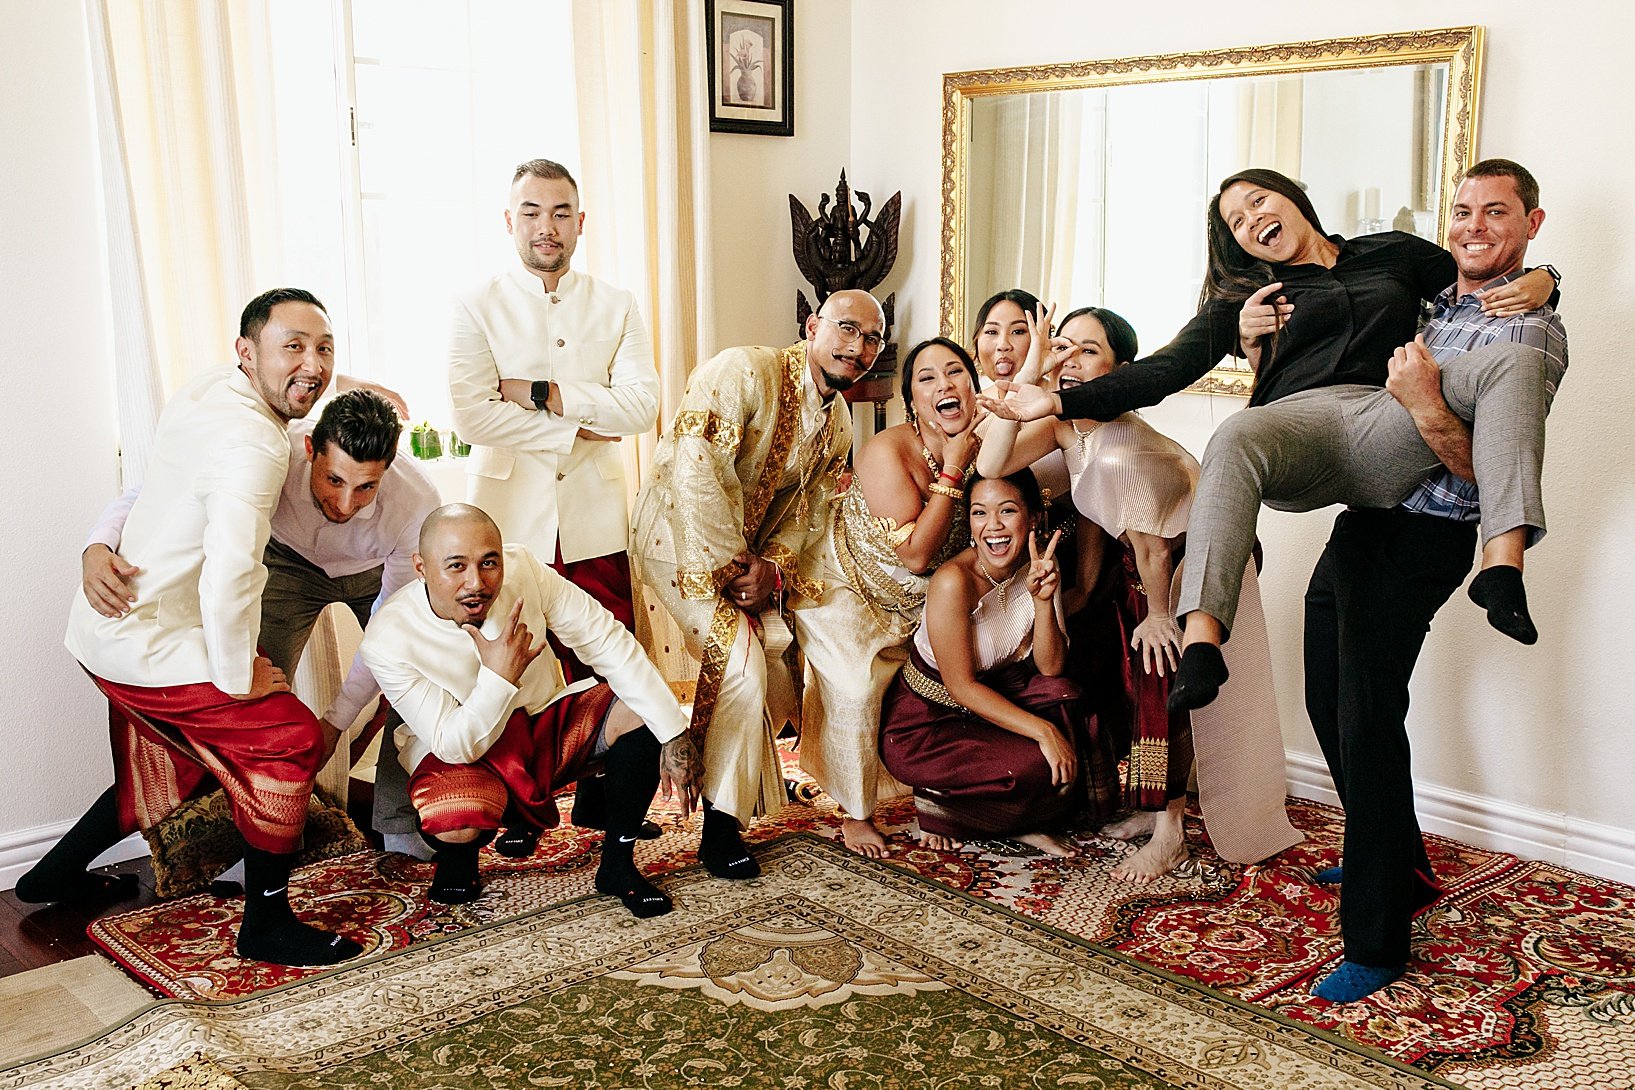 Phka Sla for Cambodian wedding in Los Angeles